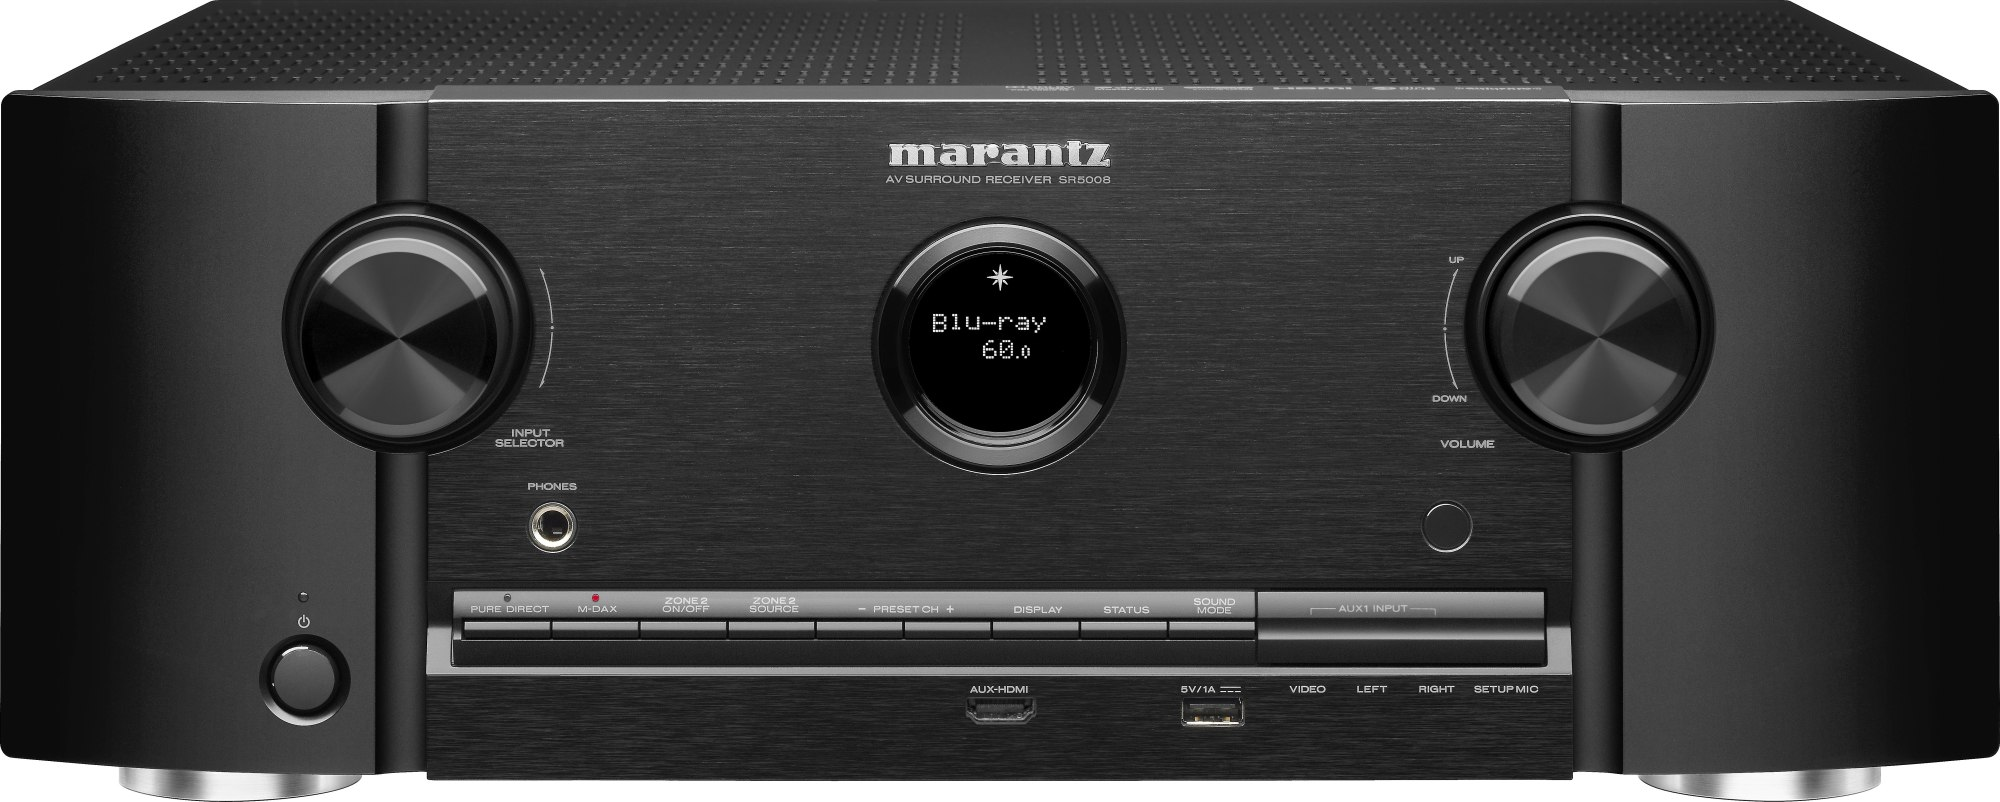 hight resolution of marantz sr5008 7 2 channel home theater receiver with apple airplay at crutchfield com